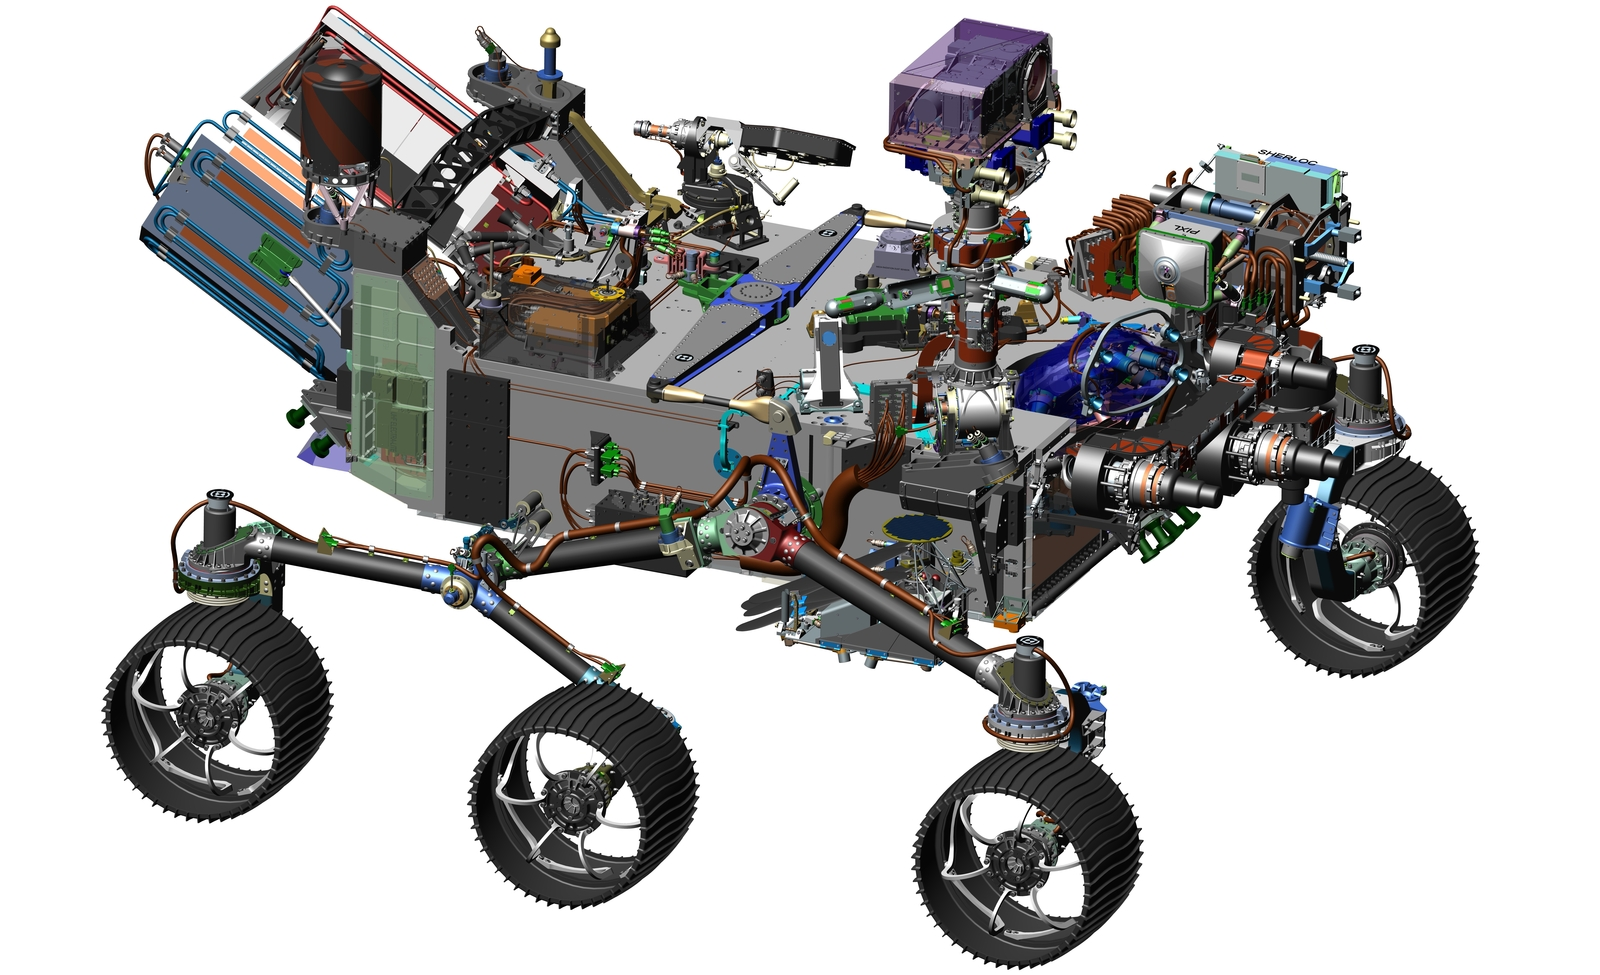 Computer-Design Drawing for NASA's 2020 Mars Rover